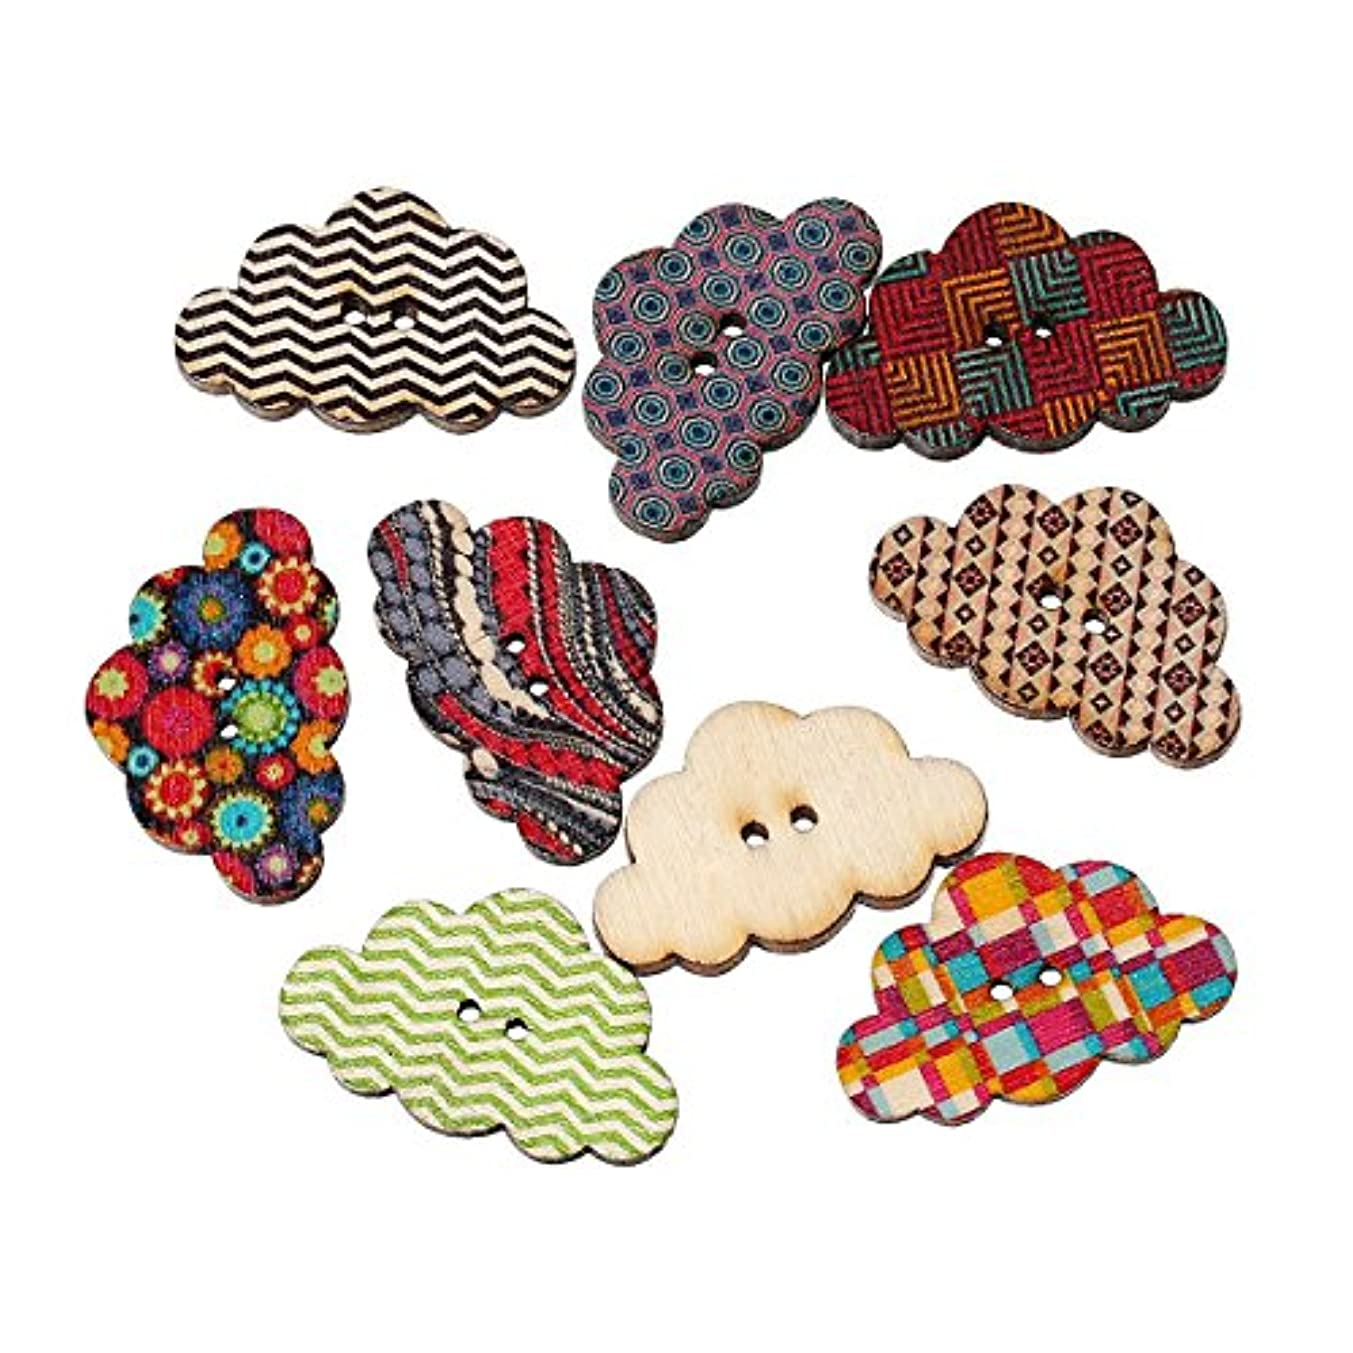 PEPPERLONELY Brand 50PC Mixed Color Cloud 2 Hole Scrapbooking Sewing Wood Buttons 30x19mm (1-1/6 Inchx1-3/4 Inch)